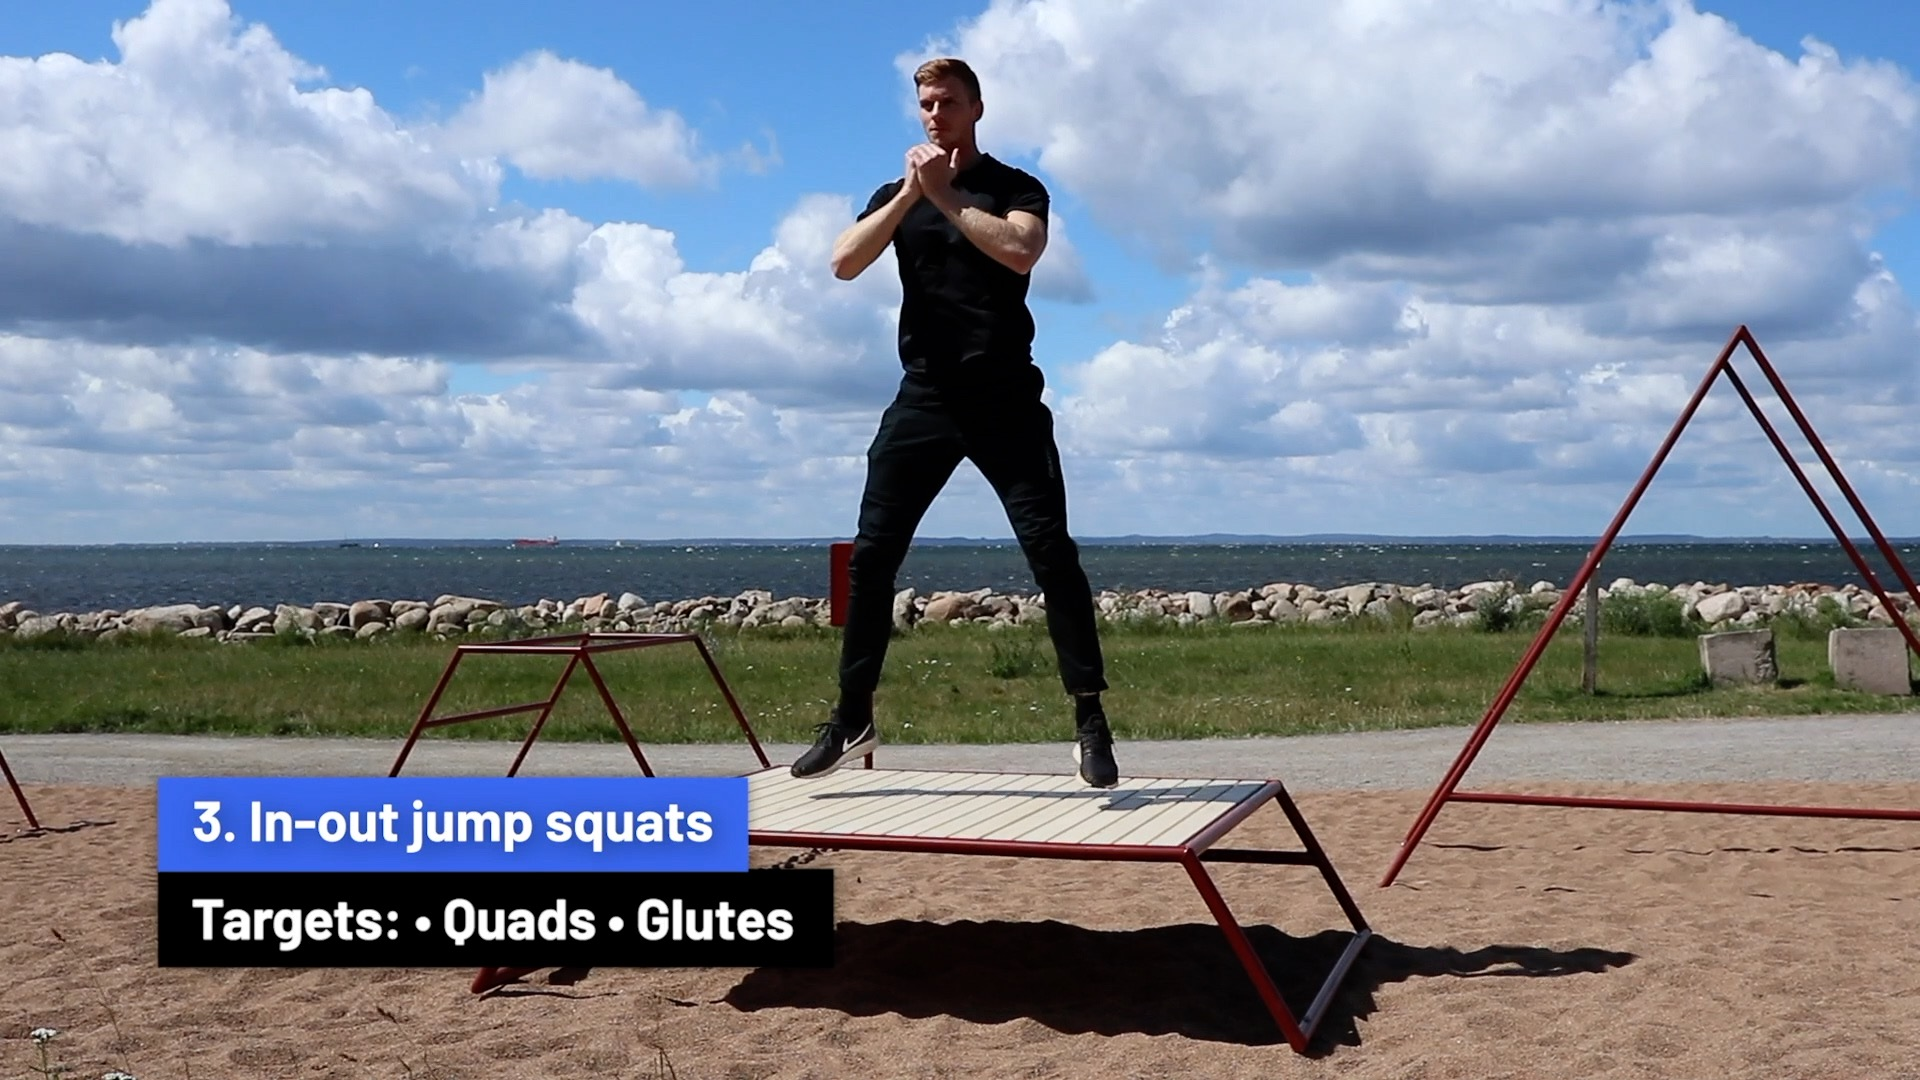 In-out jump squats